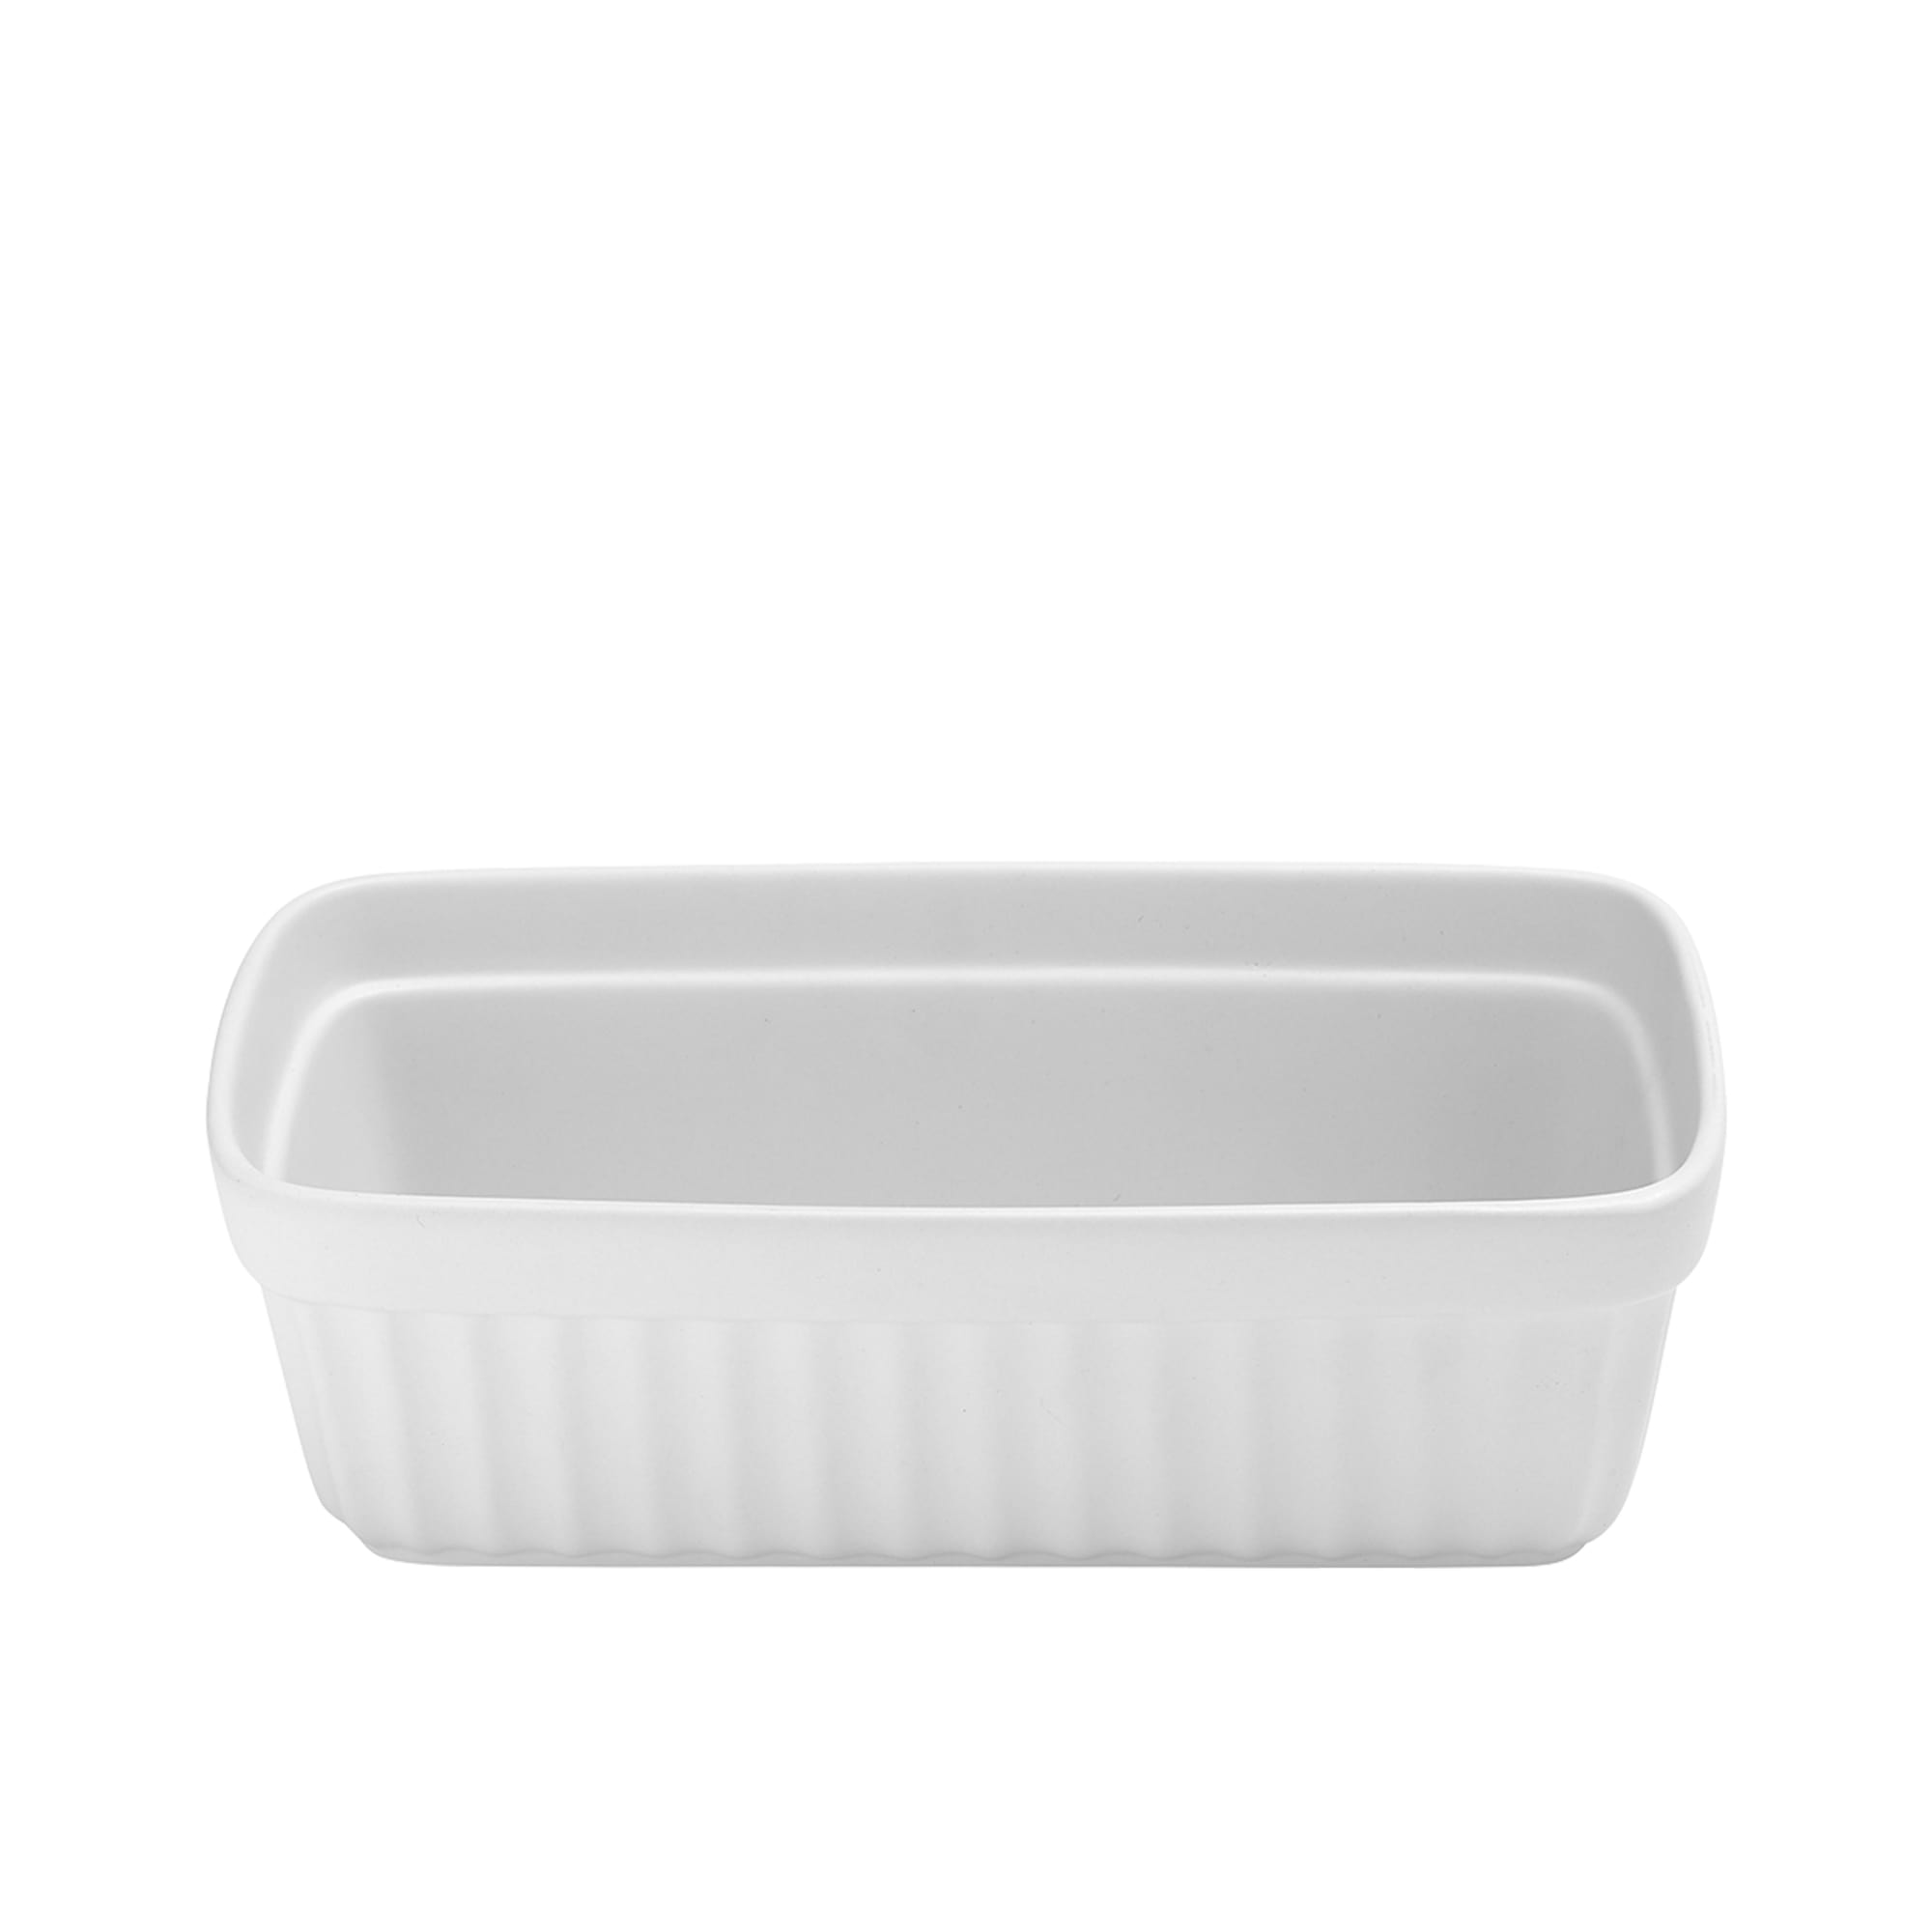 Ladelle Abode Loaf Baking Dish 26x14x9cm White